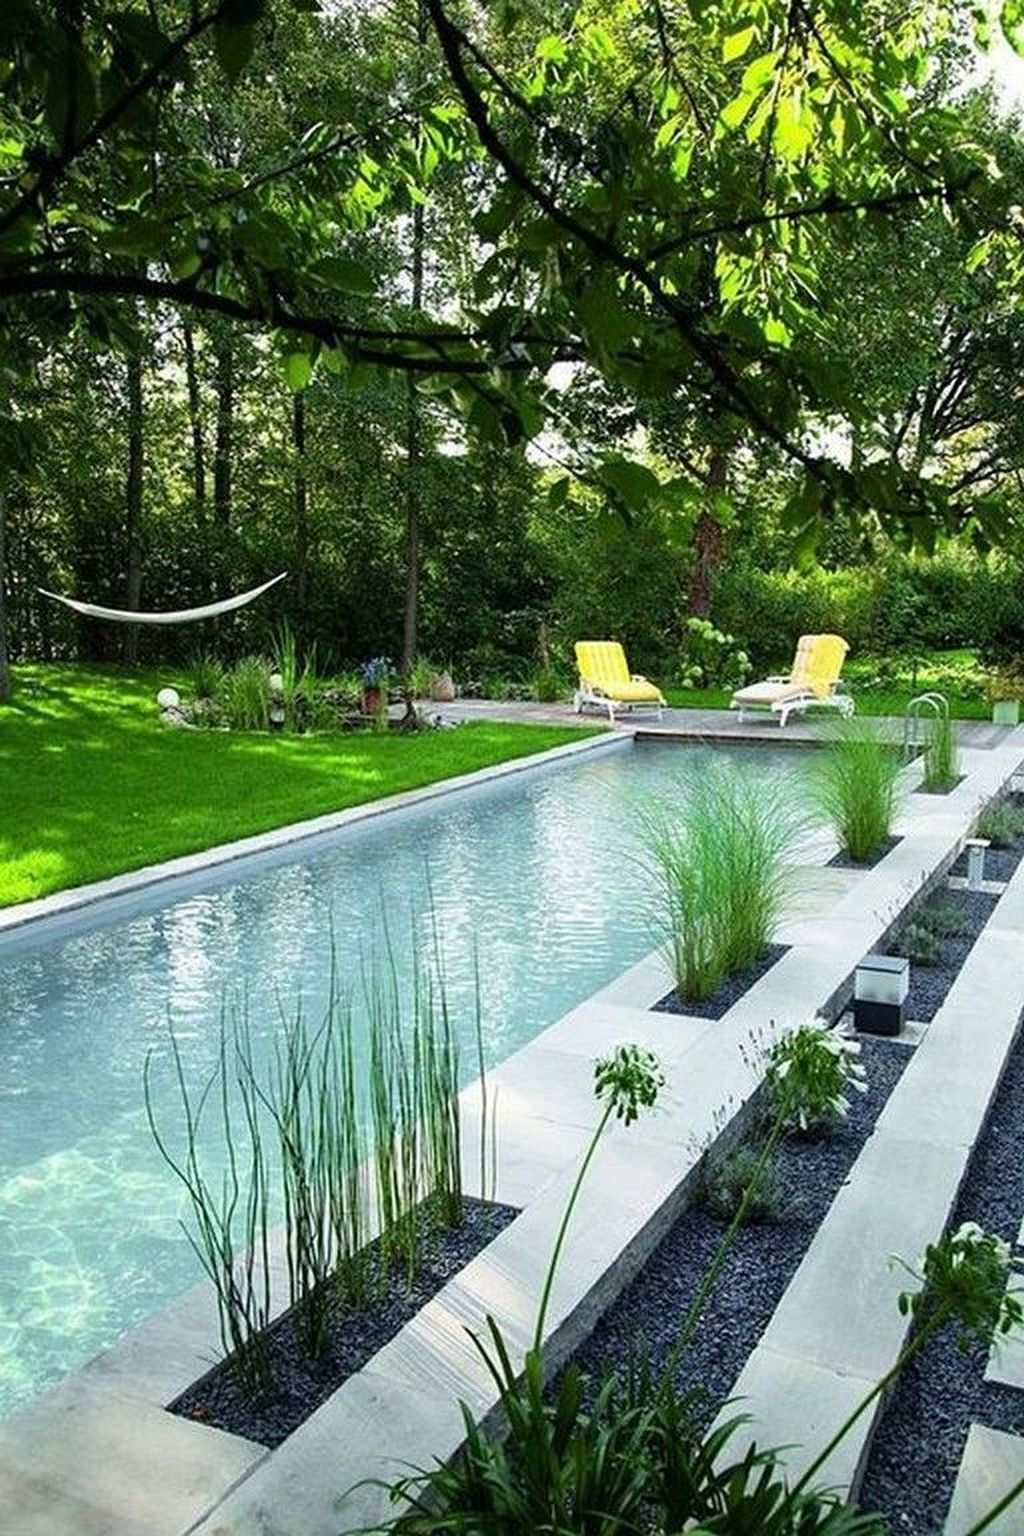 49 Landscaping Ideas For Backyard Swimming Pools Swimming Pool Landscaping Pool Landscape Design Small Pool Design